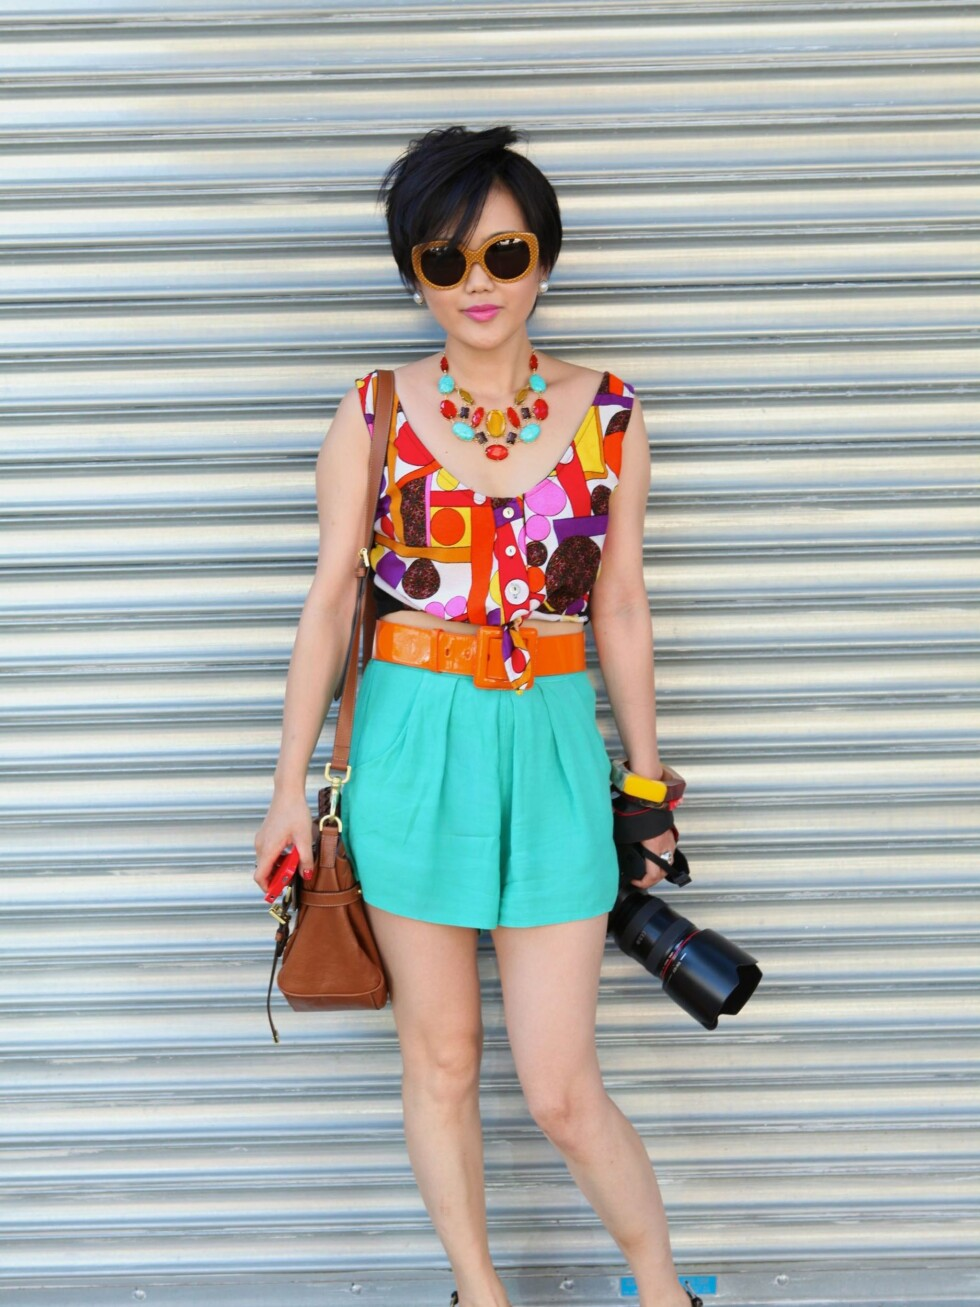 <strong>NEW YORK, NY - SEPTEMBER 15:</strong> Photographer Tracy Wang seen on the streets of Manhattan to attend the Jason Wu Show for Spring 2012 Fashion Week on September 15, 2011 in New York City. Tracy is from China is sporting a Dior bag and Marc Jacobs bangles. (Photo by Sonja T Georgevich/Getty Images) By: All Over Press / Getty Images CODE: GE01X8 Foto: All Over Press